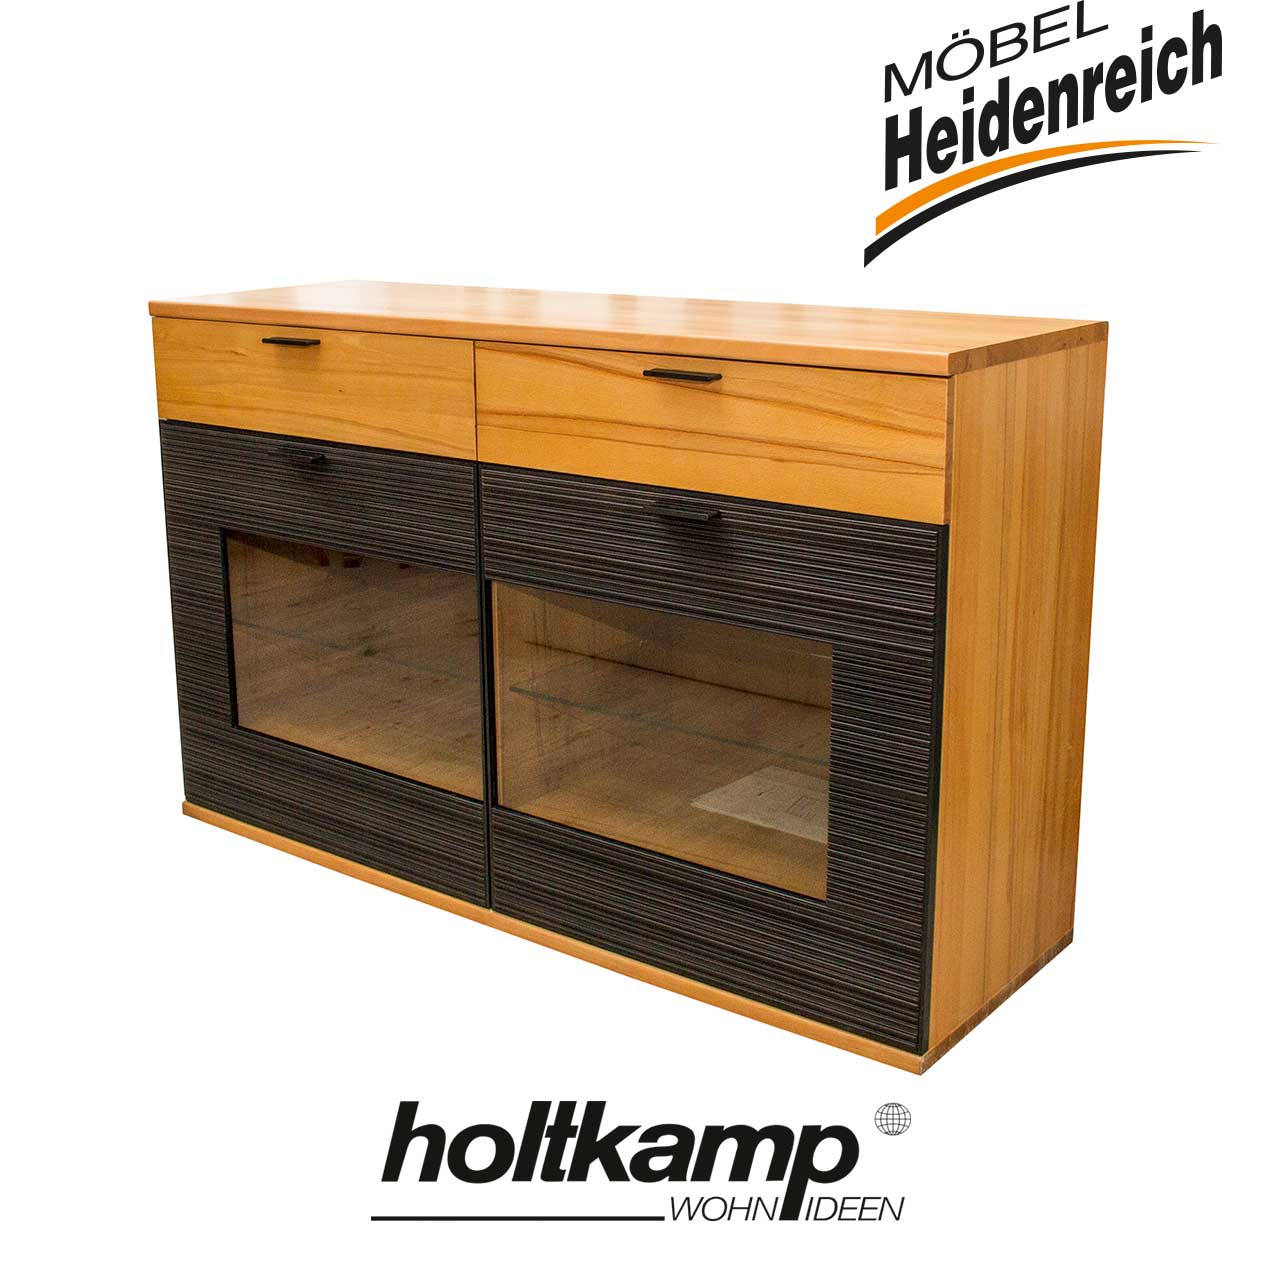 holtkamp sideboard savano sideboards sale m bel heidenreich. Black Bedroom Furniture Sets. Home Design Ideas